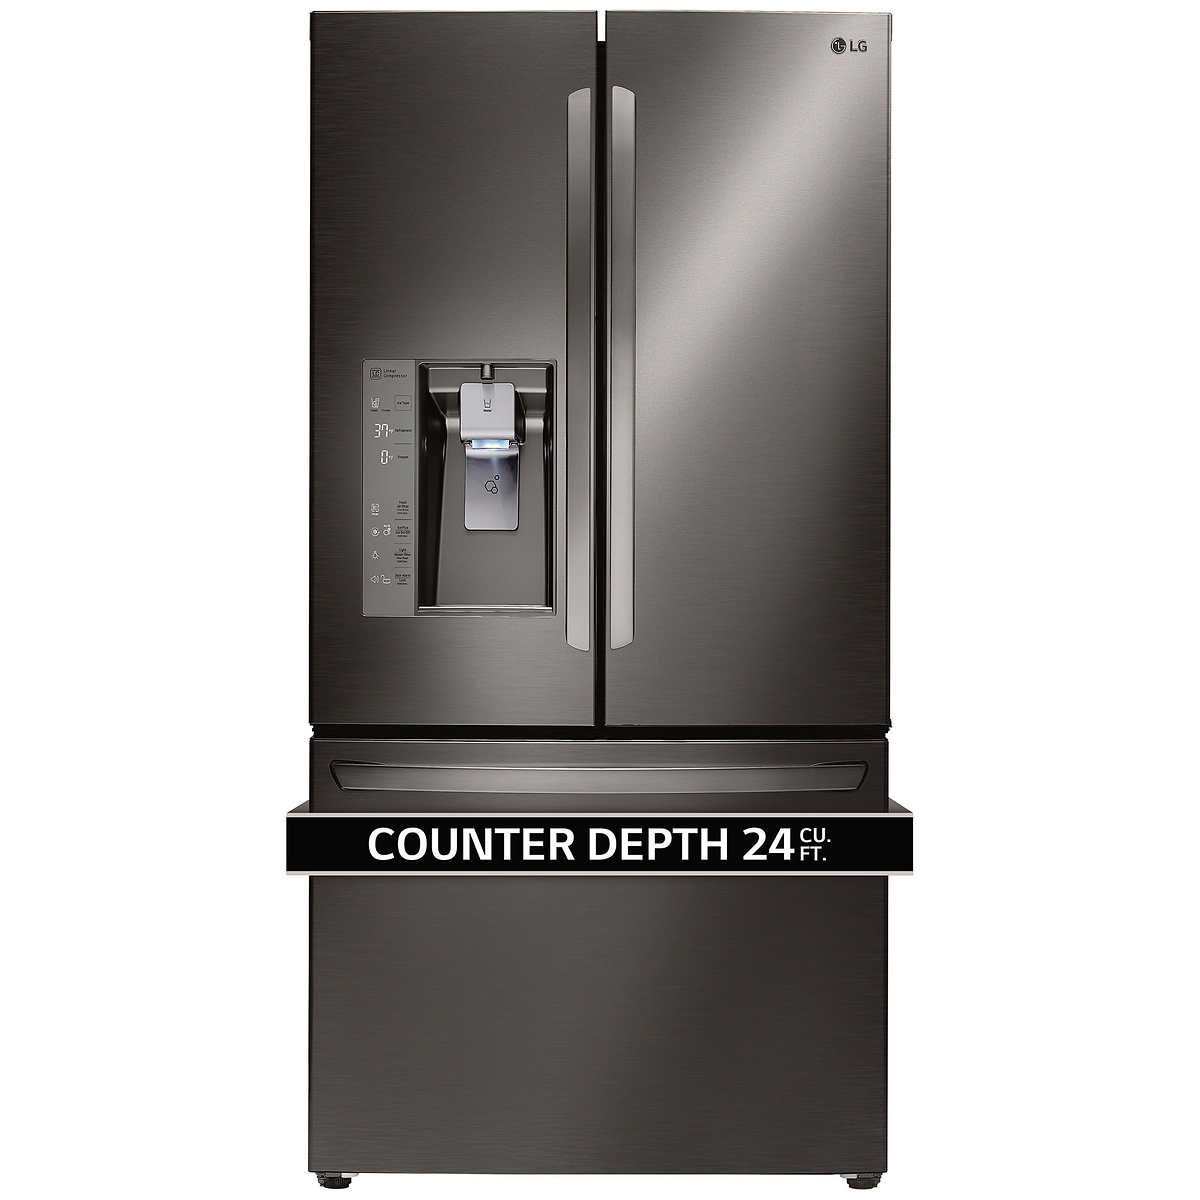 Whirlpool white ice costco - Lg 24cuft 3 Door French Door Ultra Capacity Counter Depth Refrigerator In Black Stainless